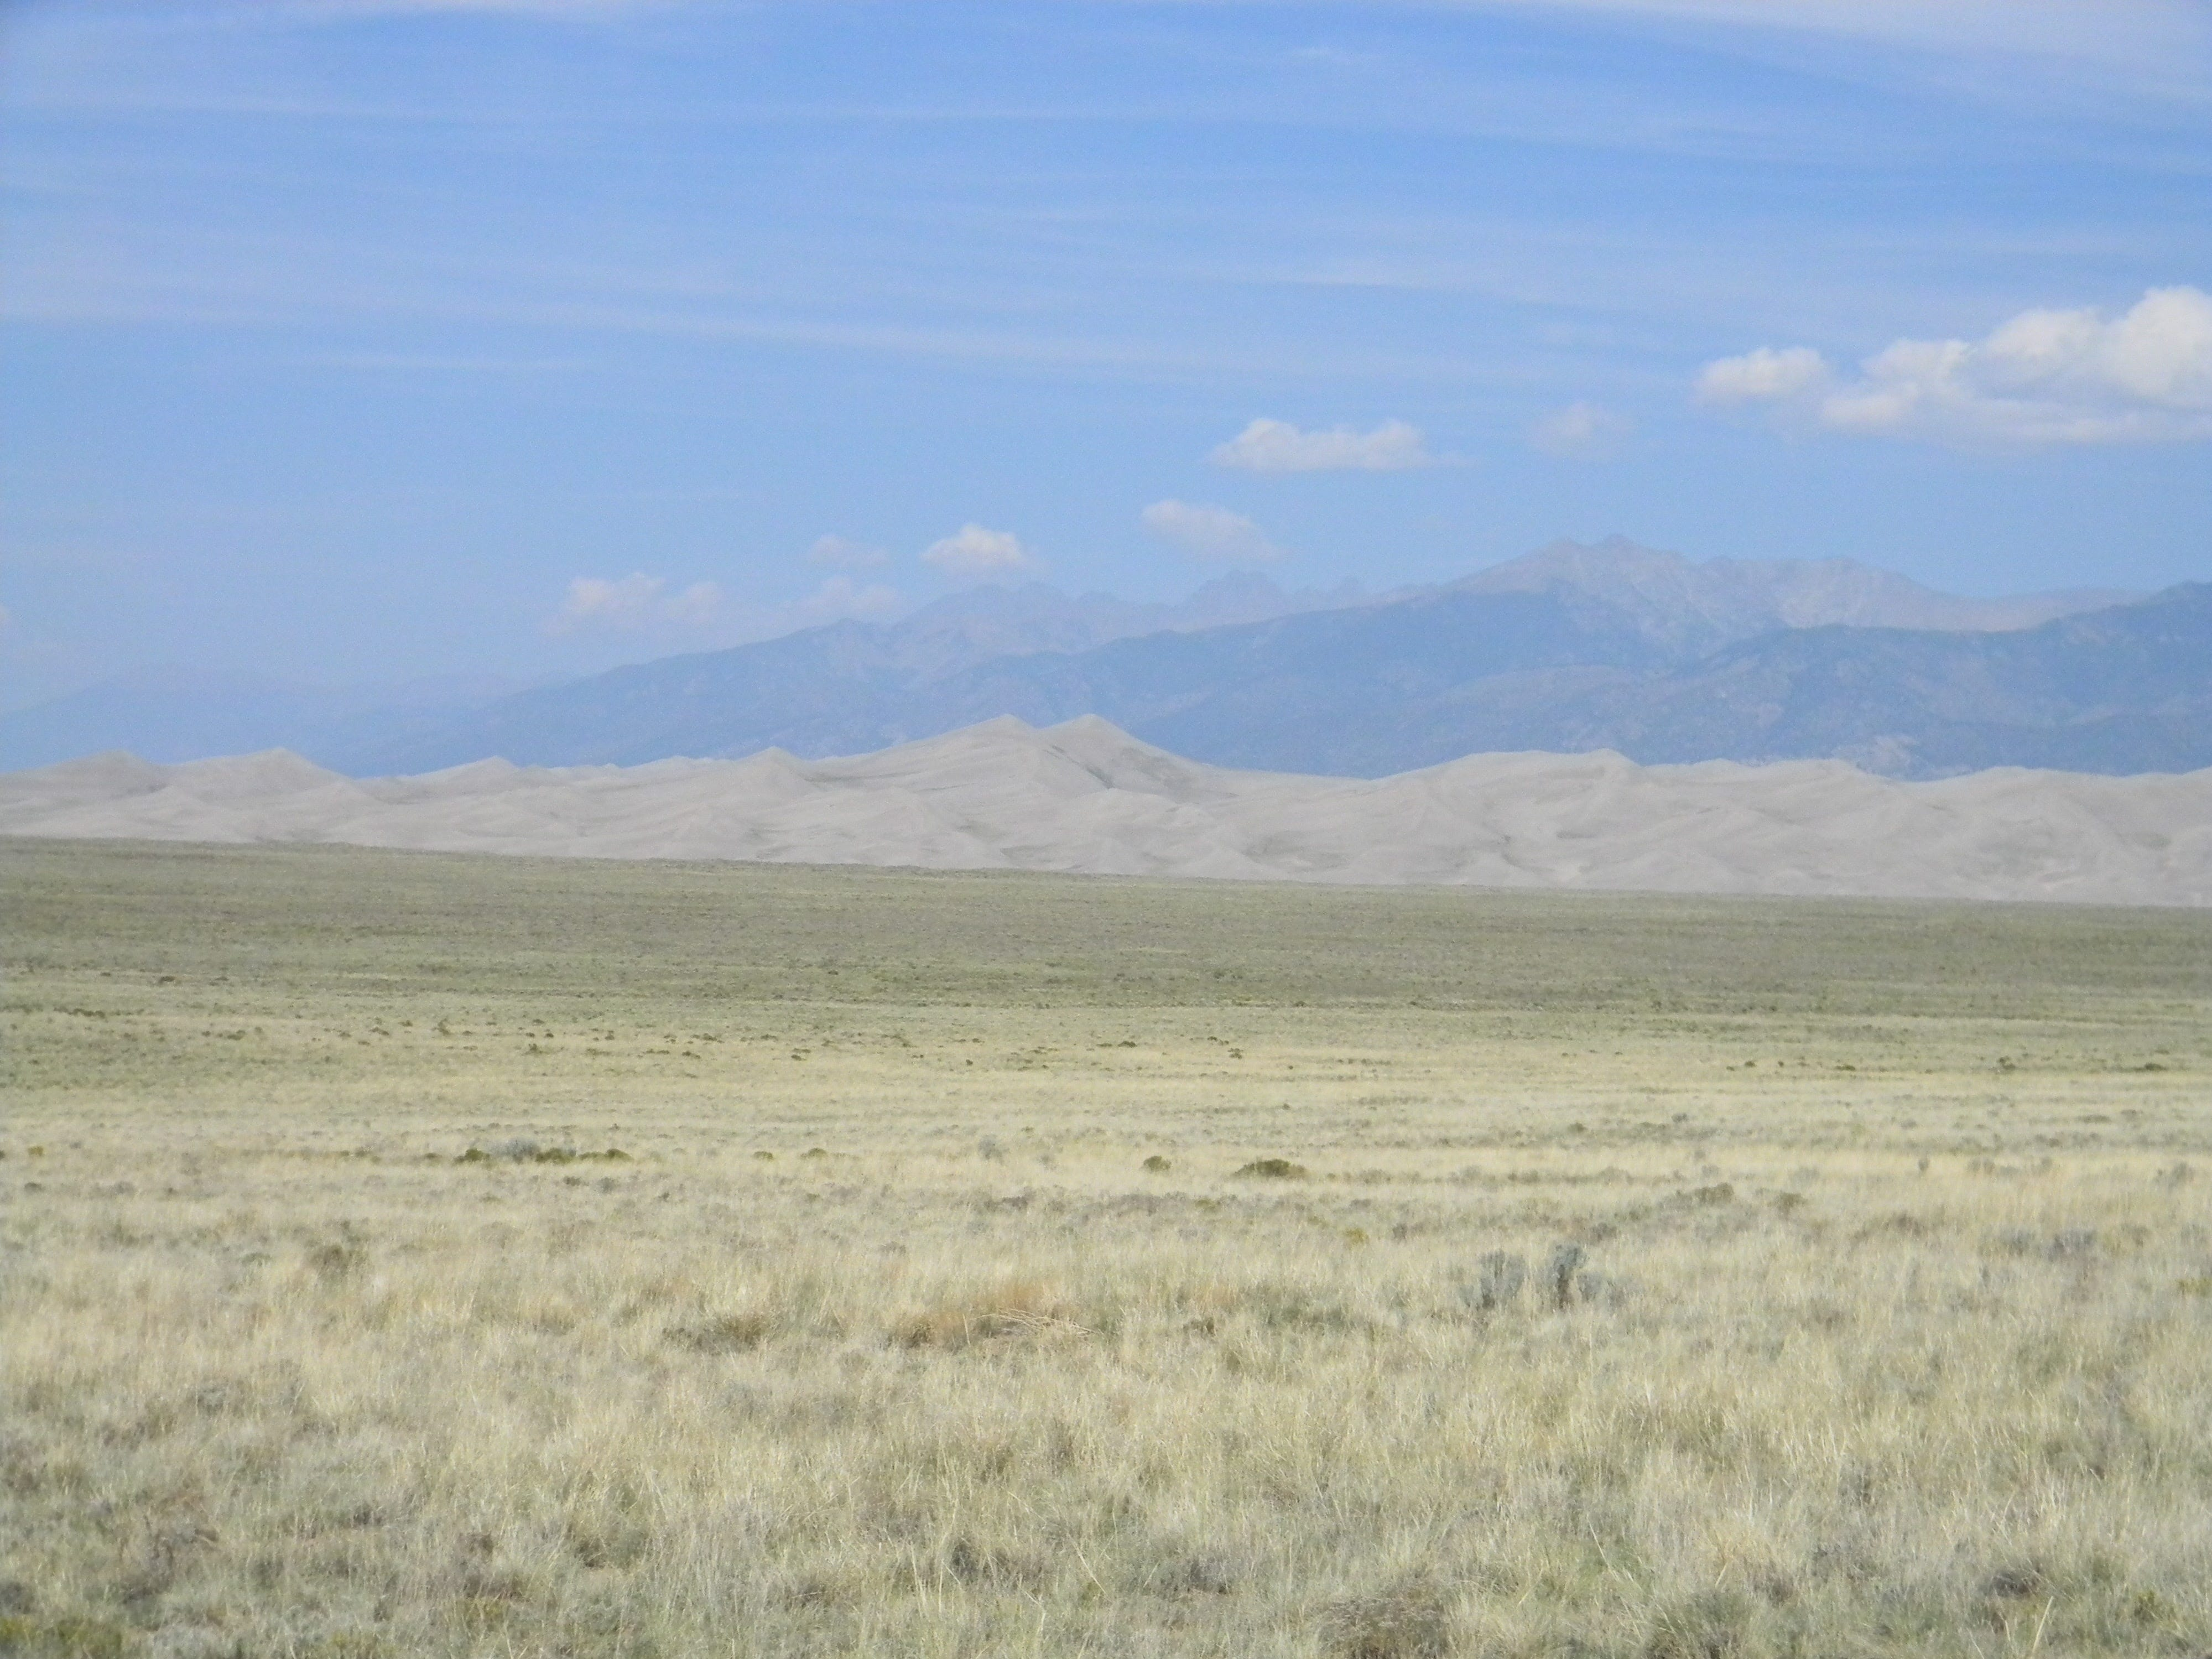 Alternate view of Sangre de Cristo mountains and great sand dunes, foreground, at Great Sands Dunes National Park.